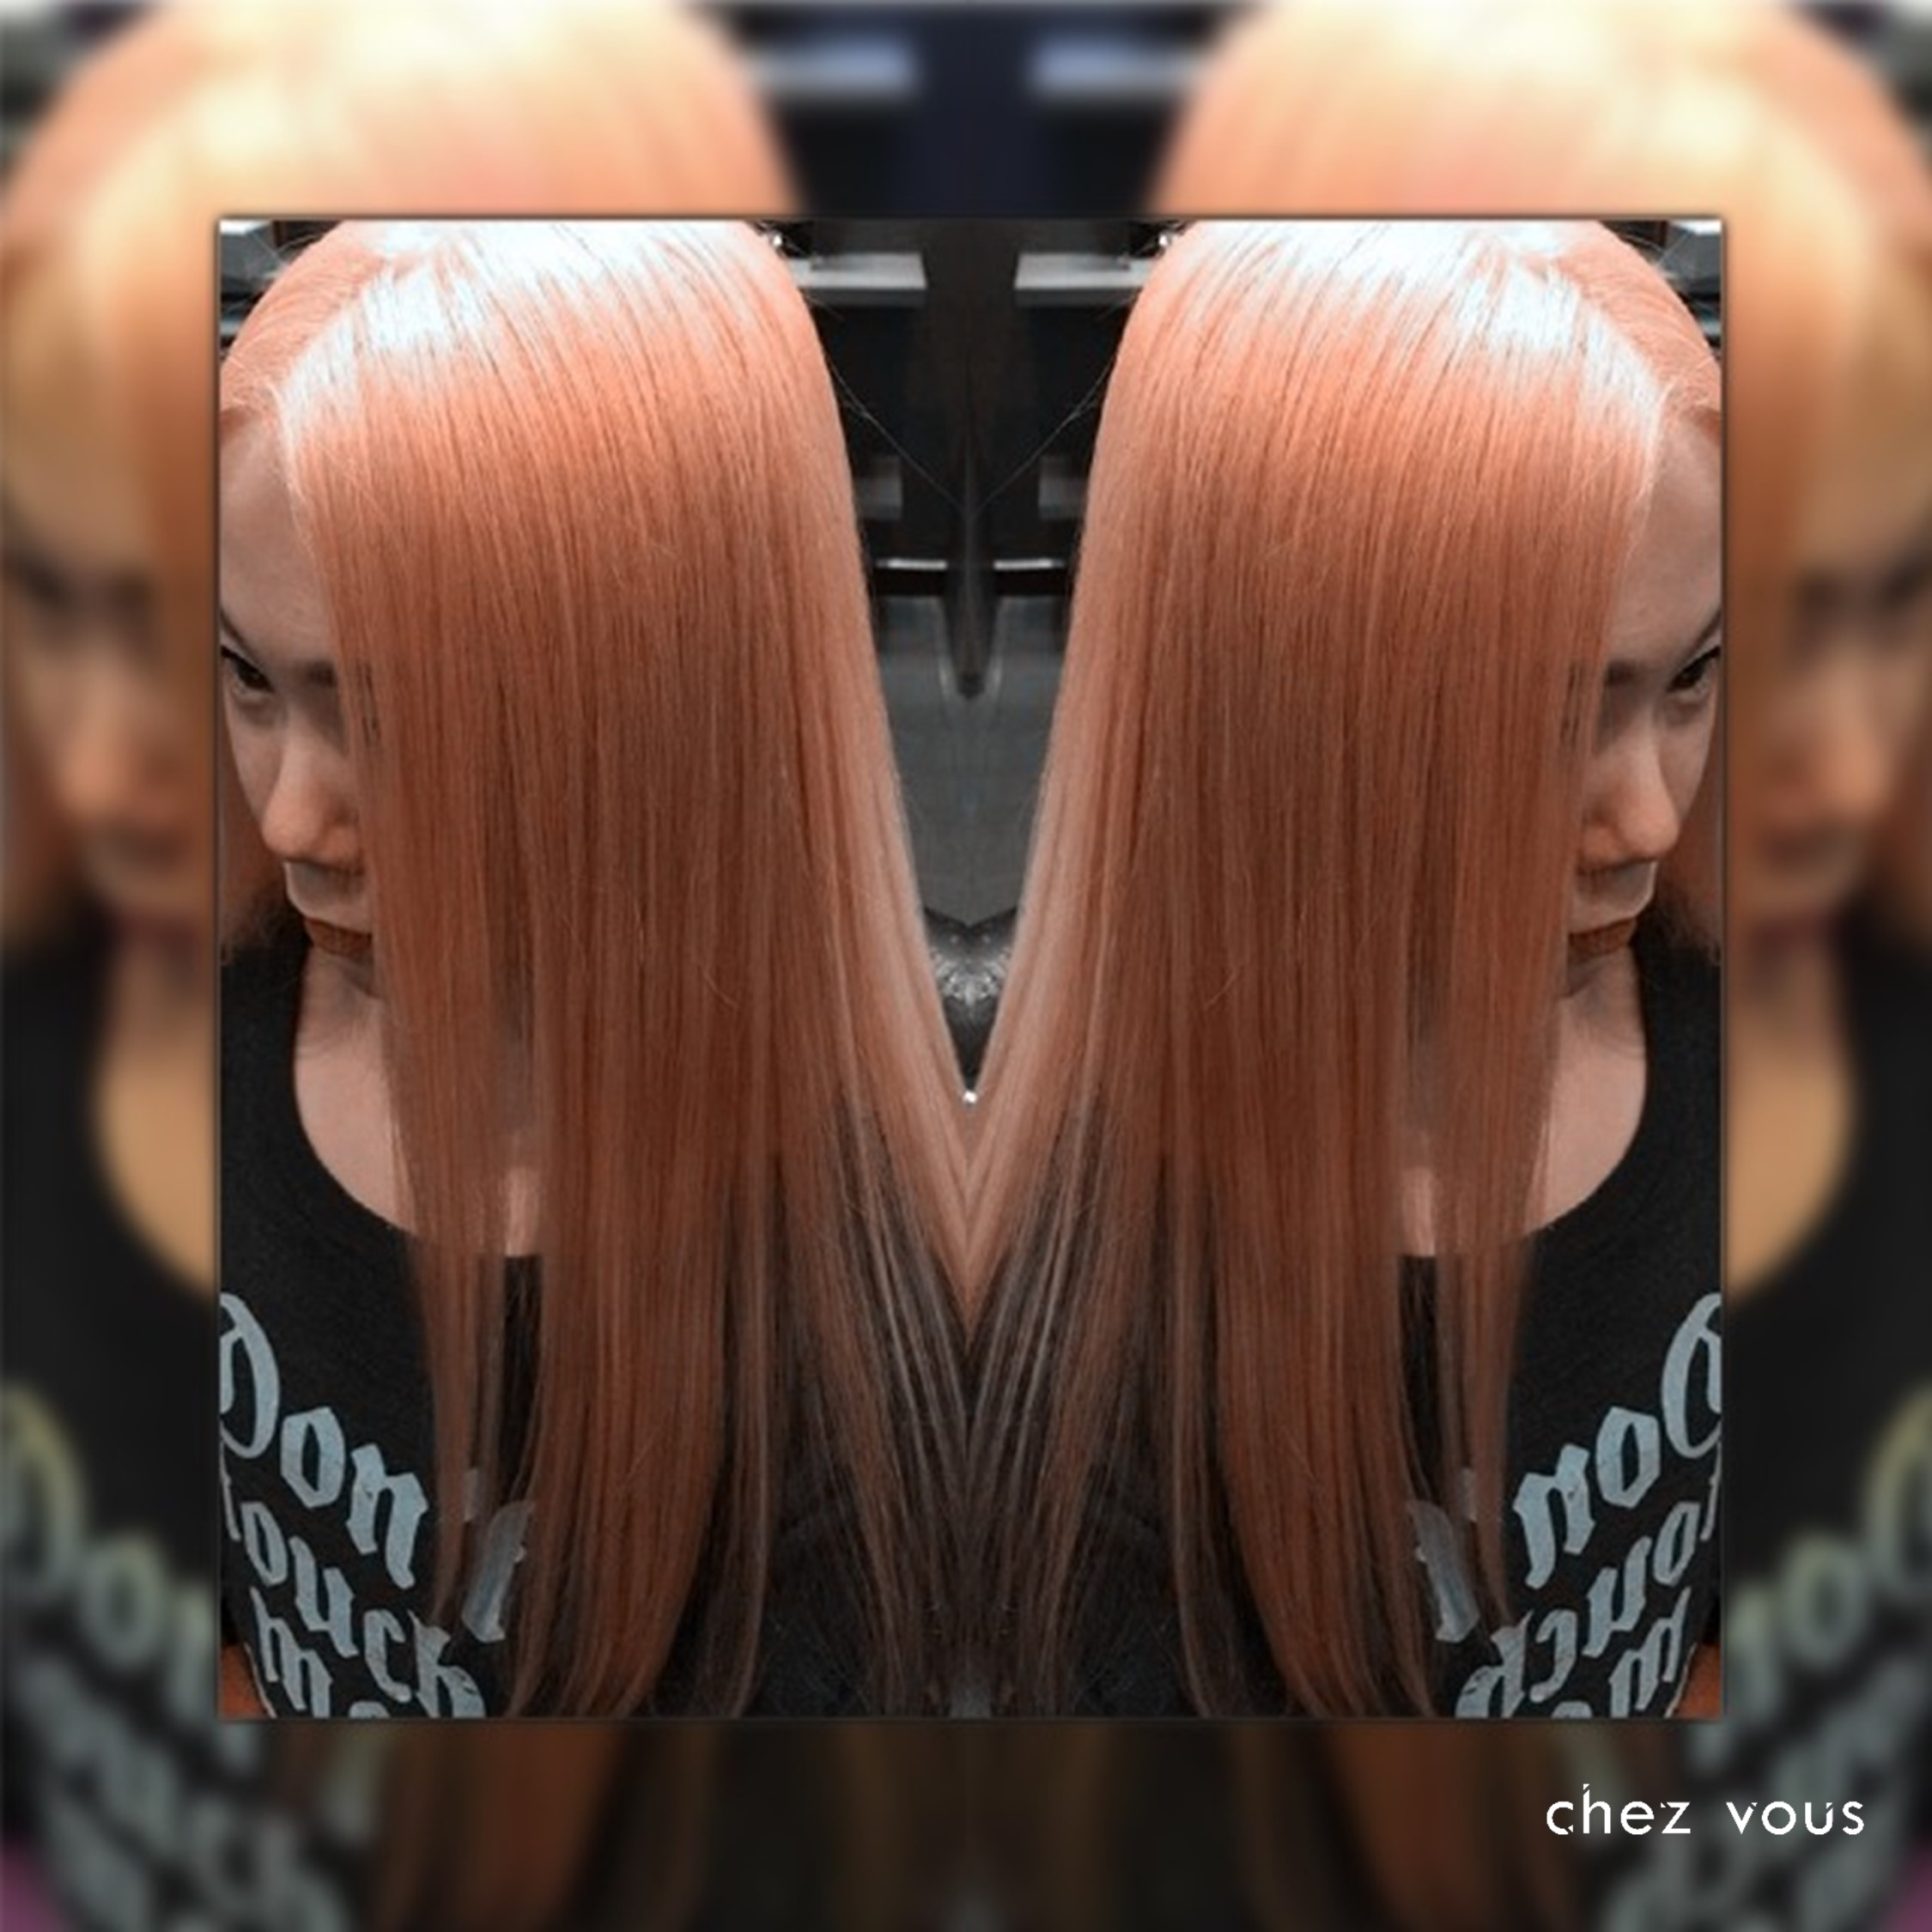 Done in Chez Vous | Design: Rose Gold Blonde